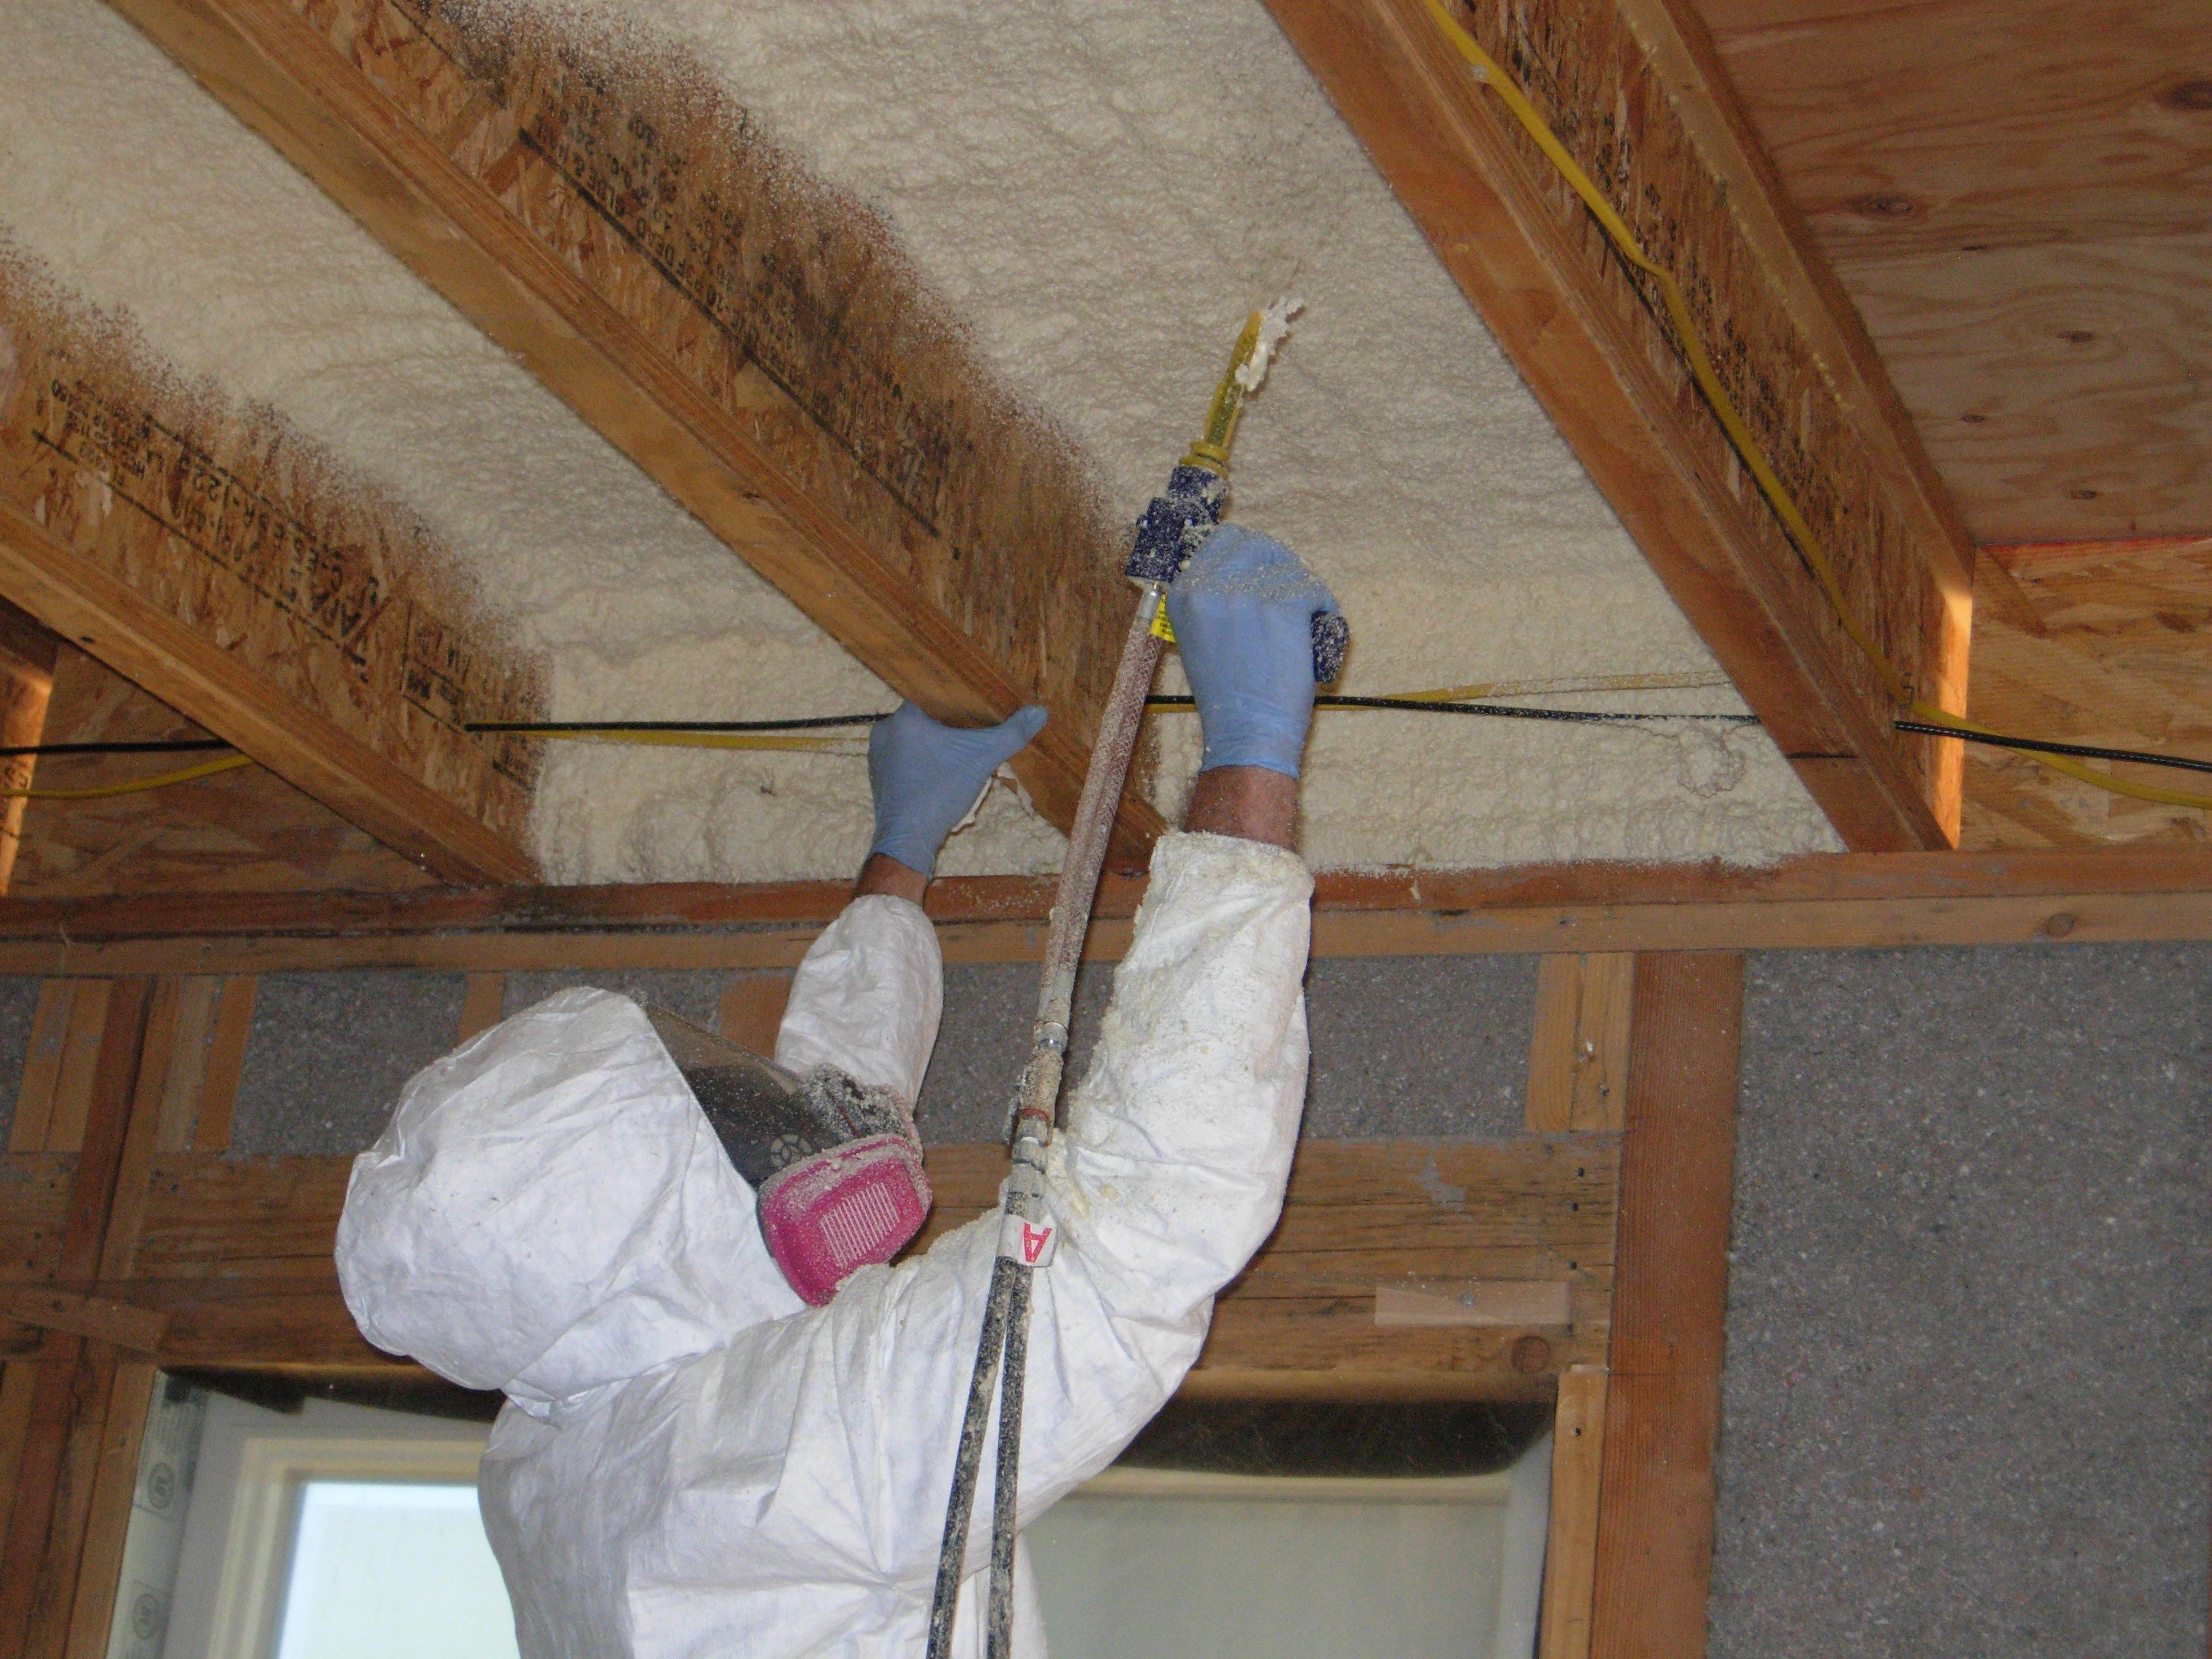 Spray Foam Insulation - A good option for flat roofs and vaulted ceilings with no attic & Spray Foam Insulation - A good option for flat roofs and vaulted ... memphite.com